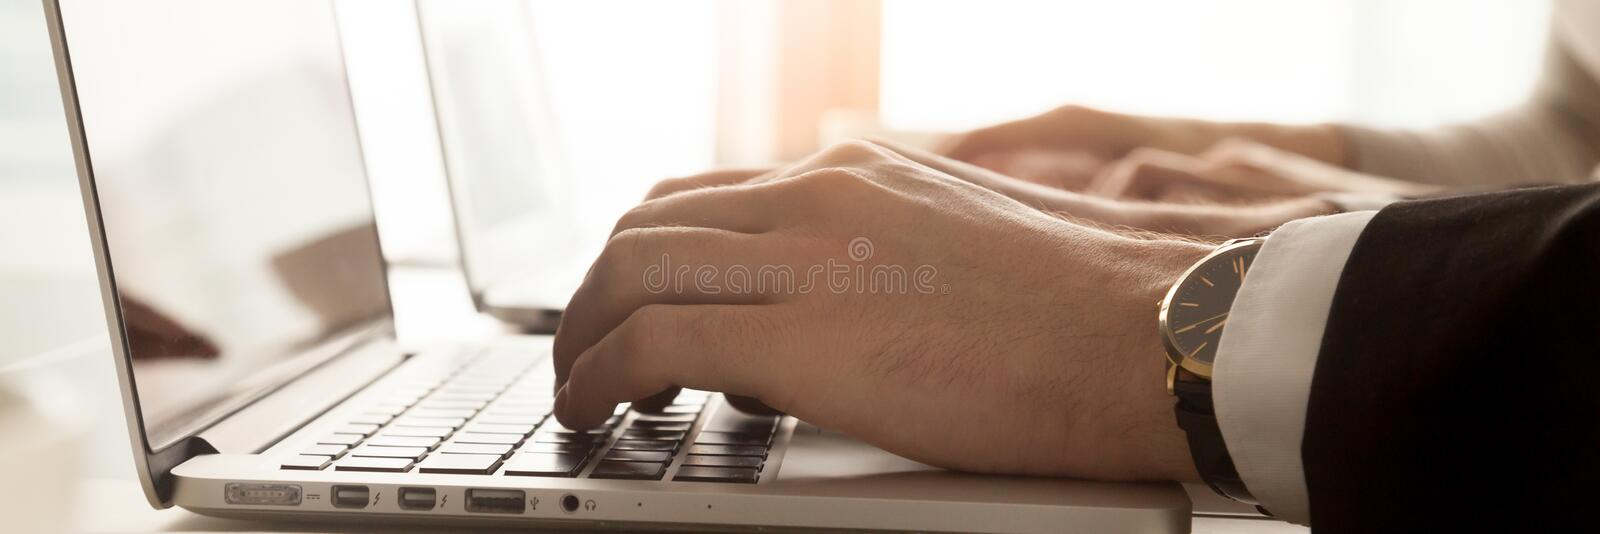 Horizontal image businessmen typing on computer hands and keyboard closeup royalty free stock photos